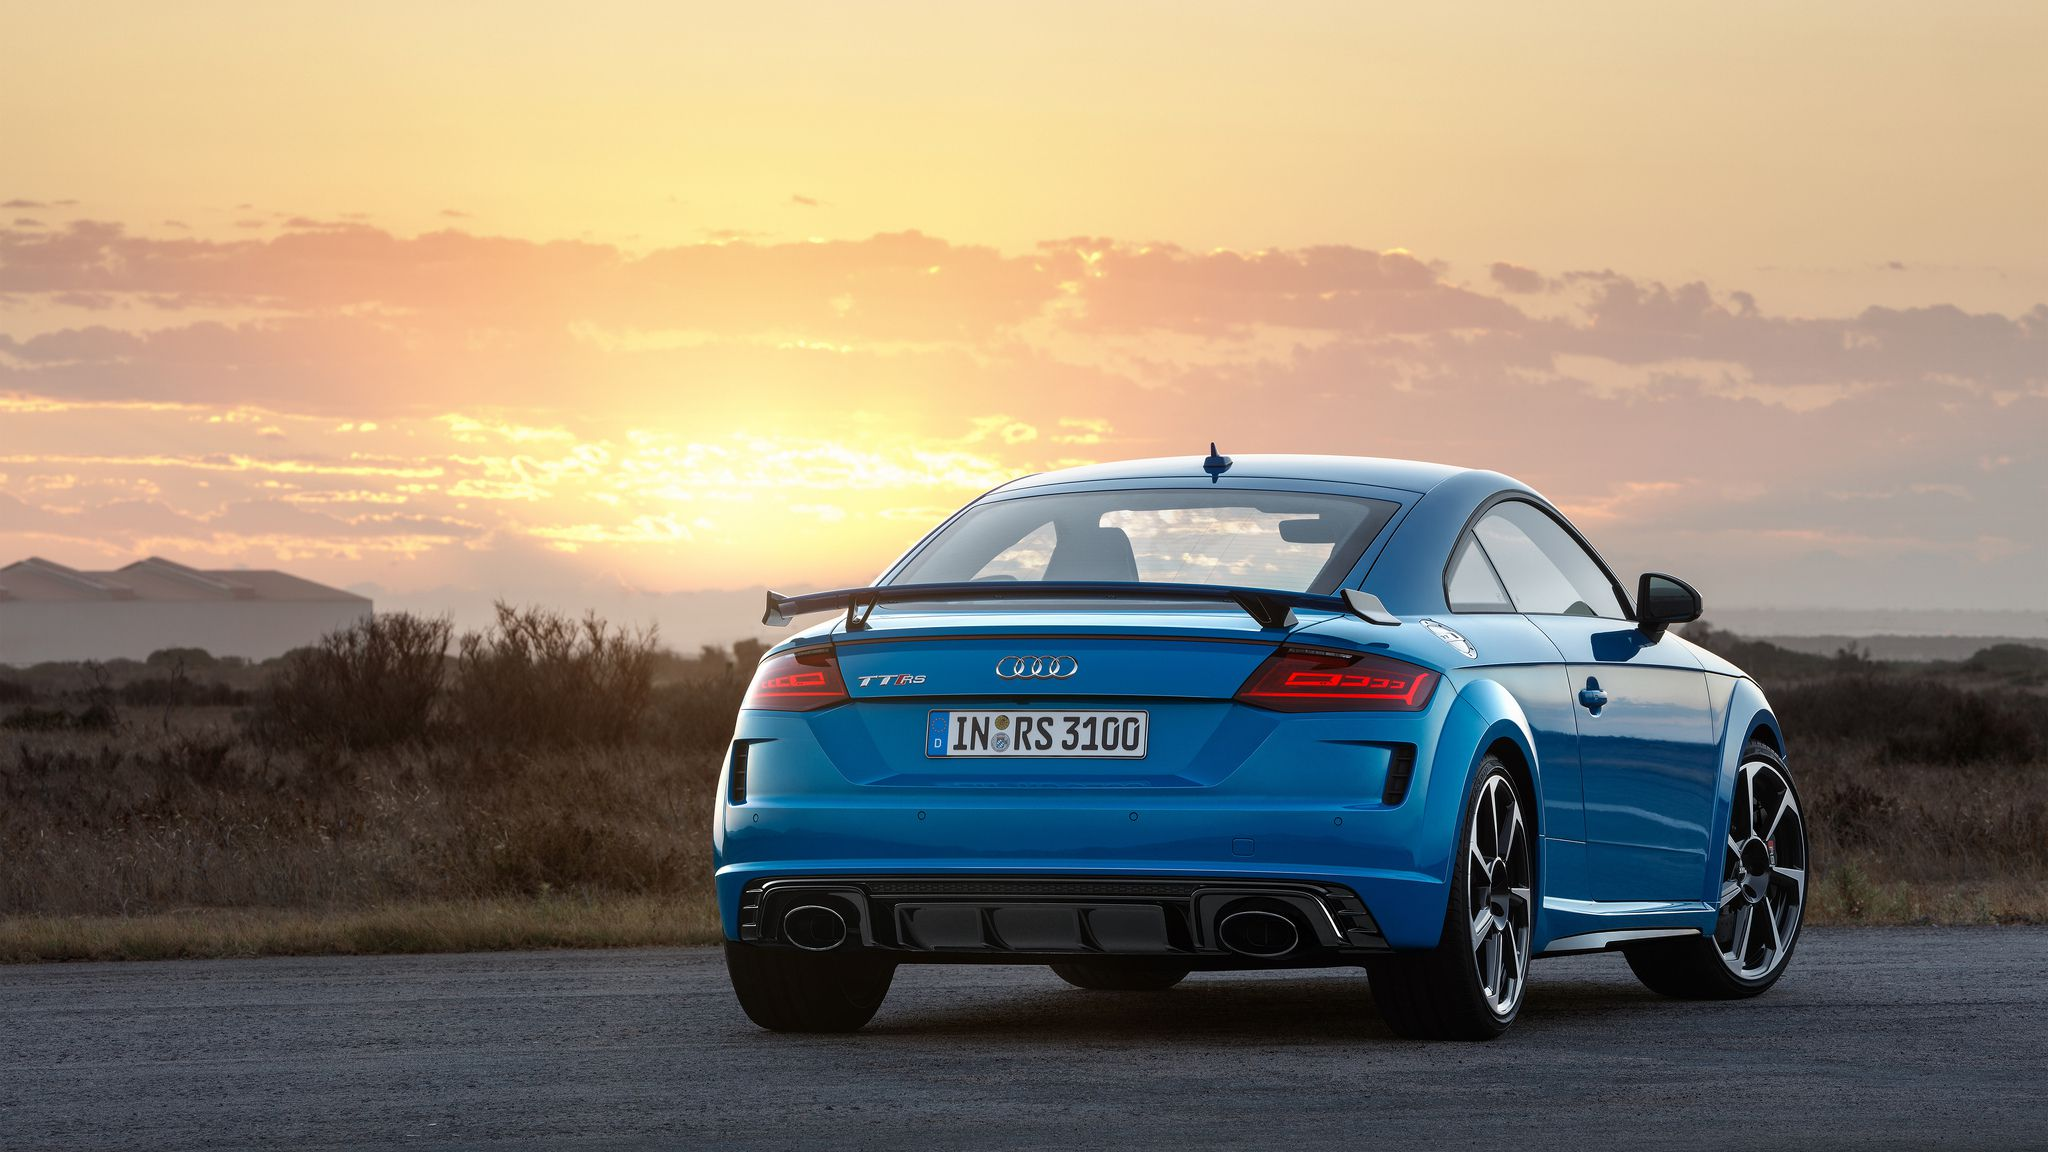 2019 Audi TT RS Coupé - rear view at sunset